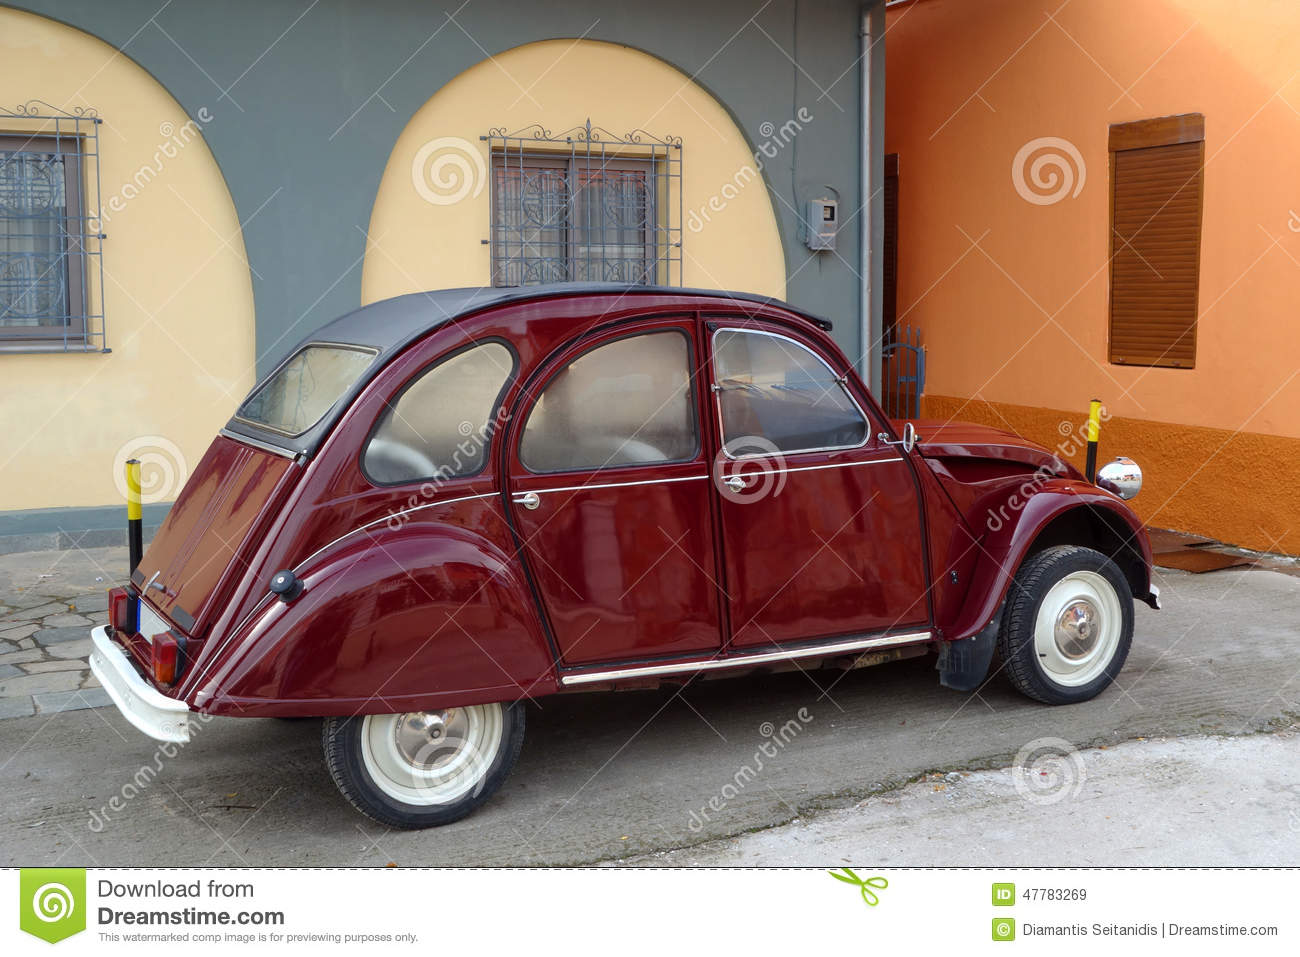 Old car stock image. Image of front, pretty, tradition - 47783269